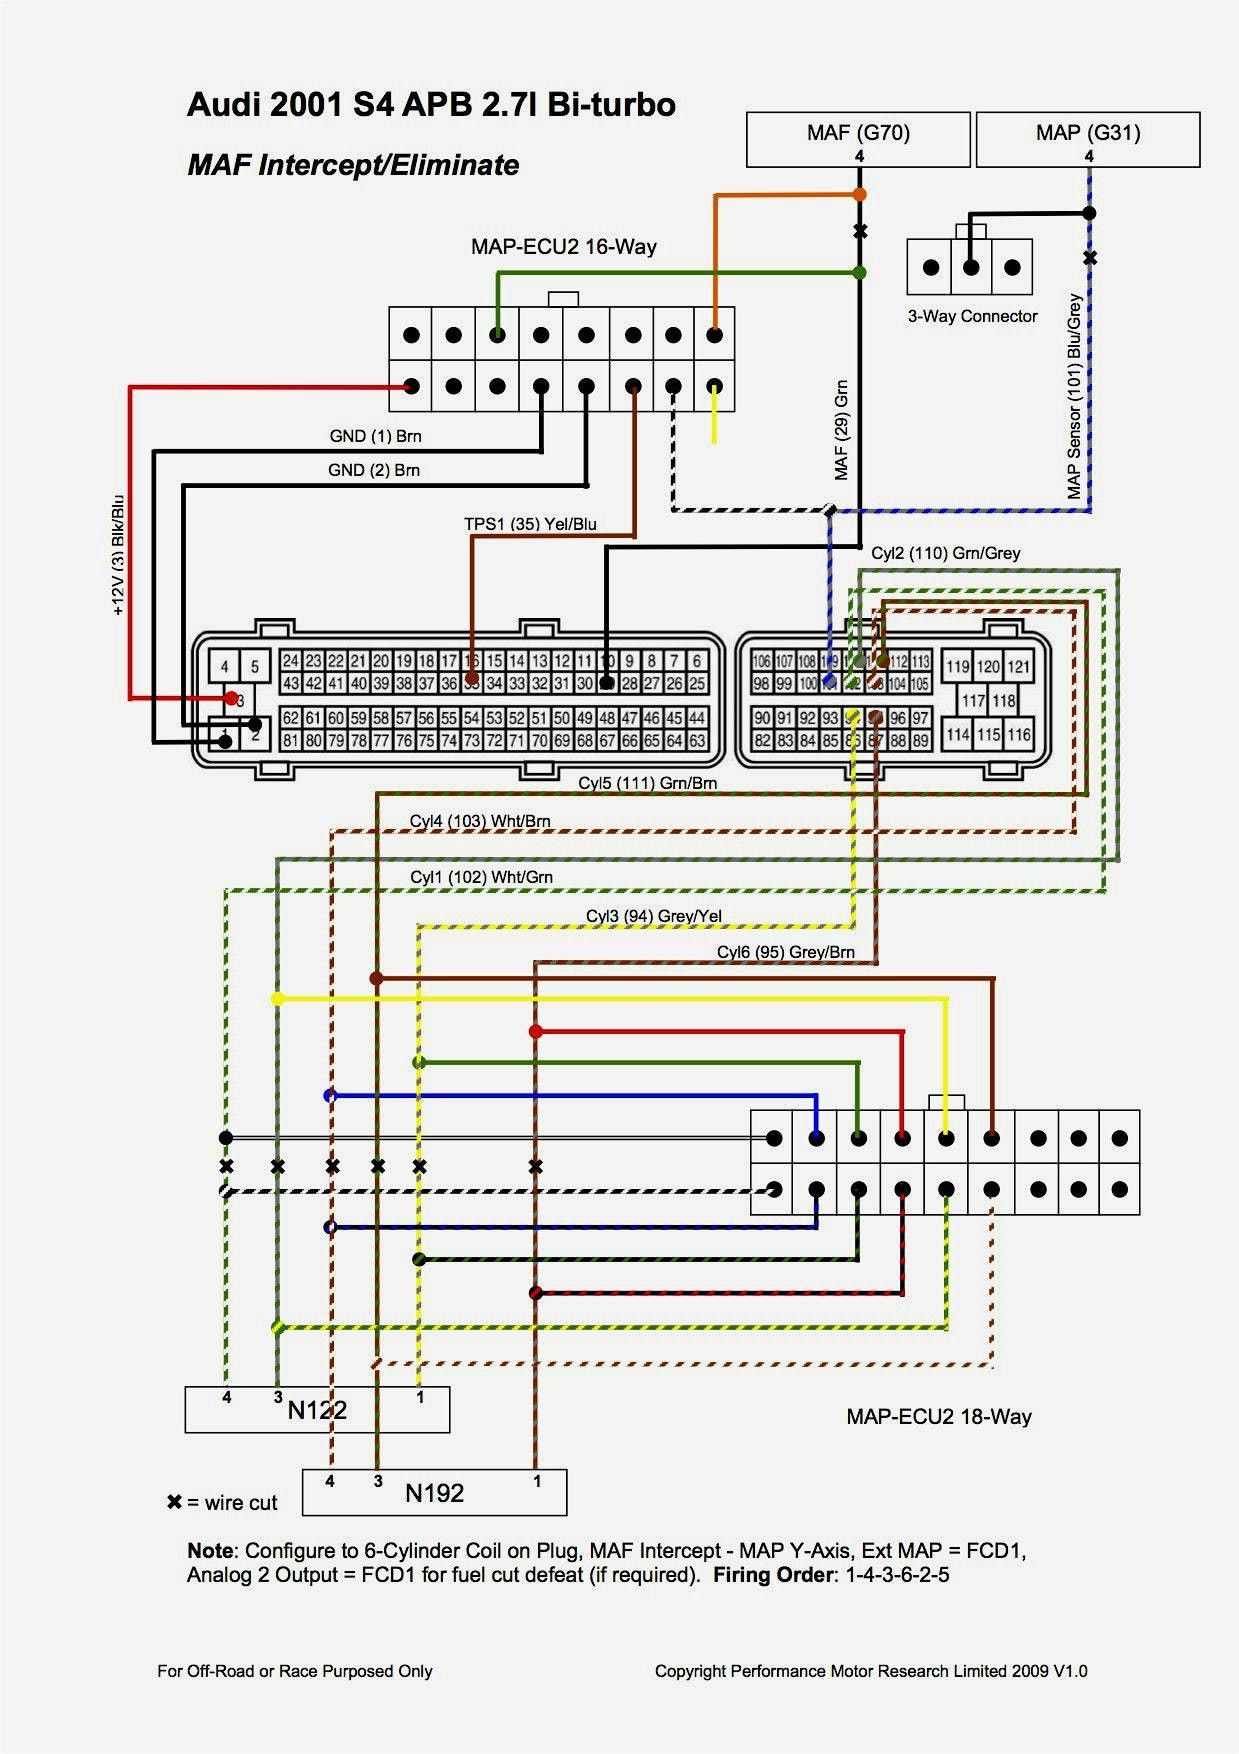 2016 Passat Stereo Wiring Diagram -Galls 9 Function Switch Box Wiring  Diagram | Bege Place Wiring DiagramBege Place Wiring Diagram